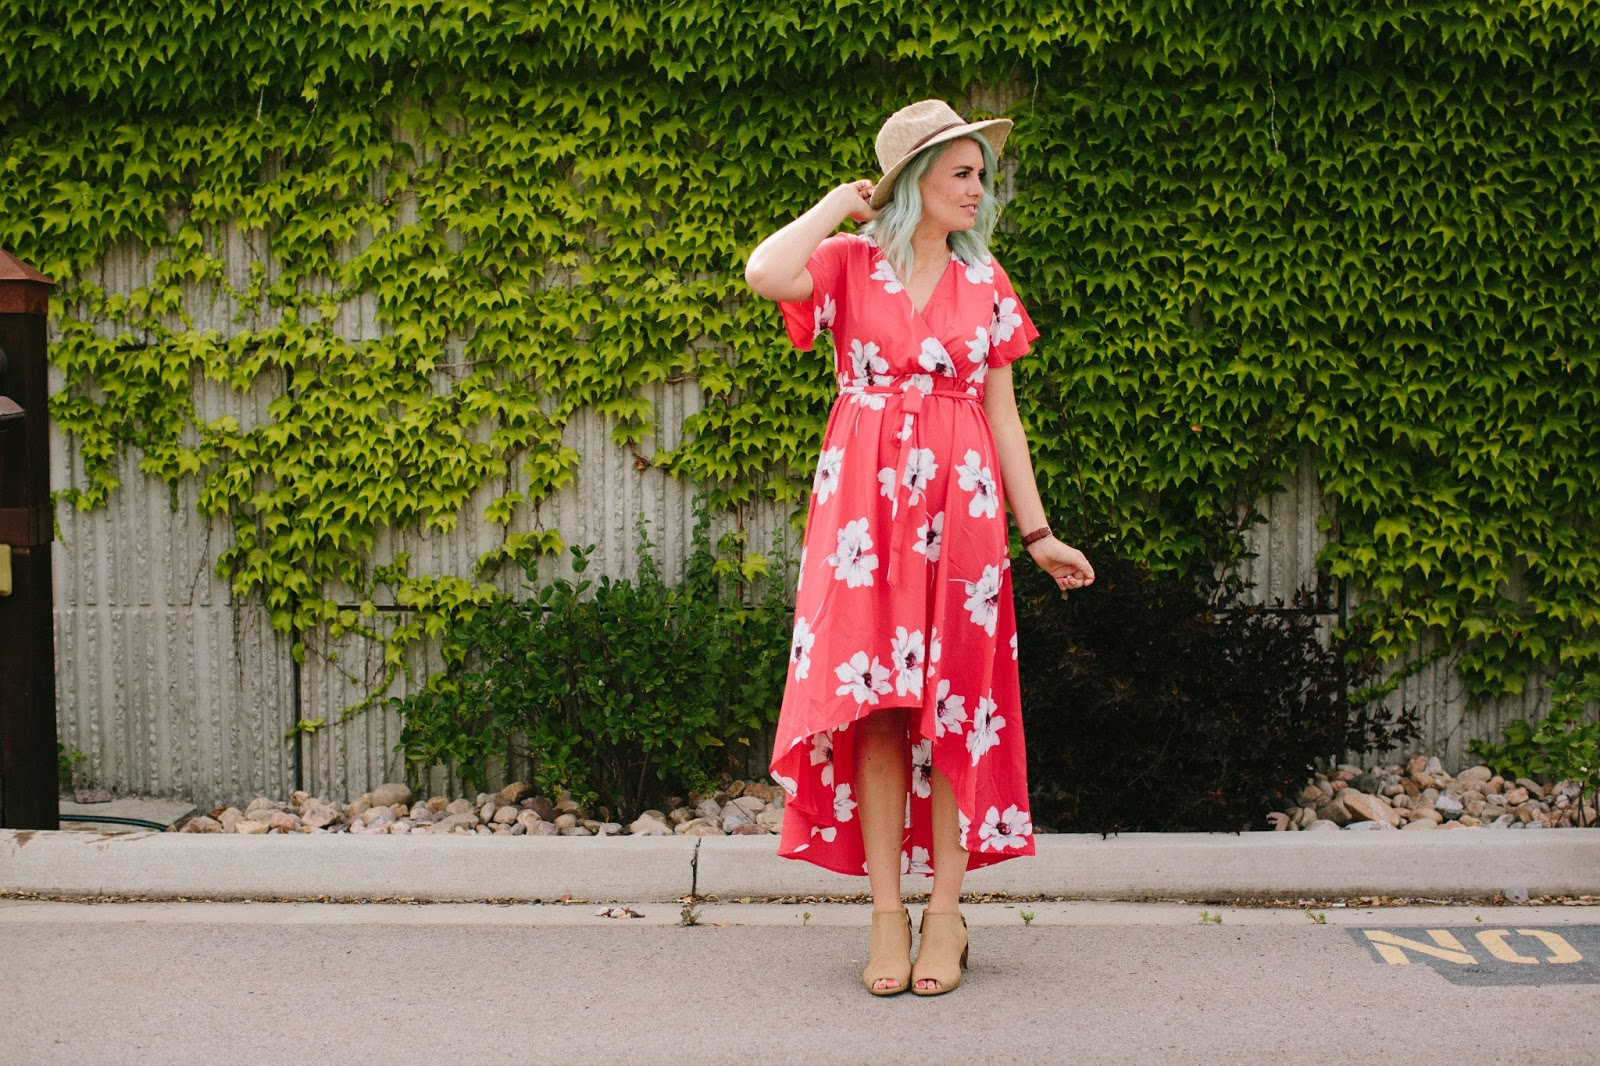 Modest Outfit, Utah Fashion Blogger, Summer Outfit